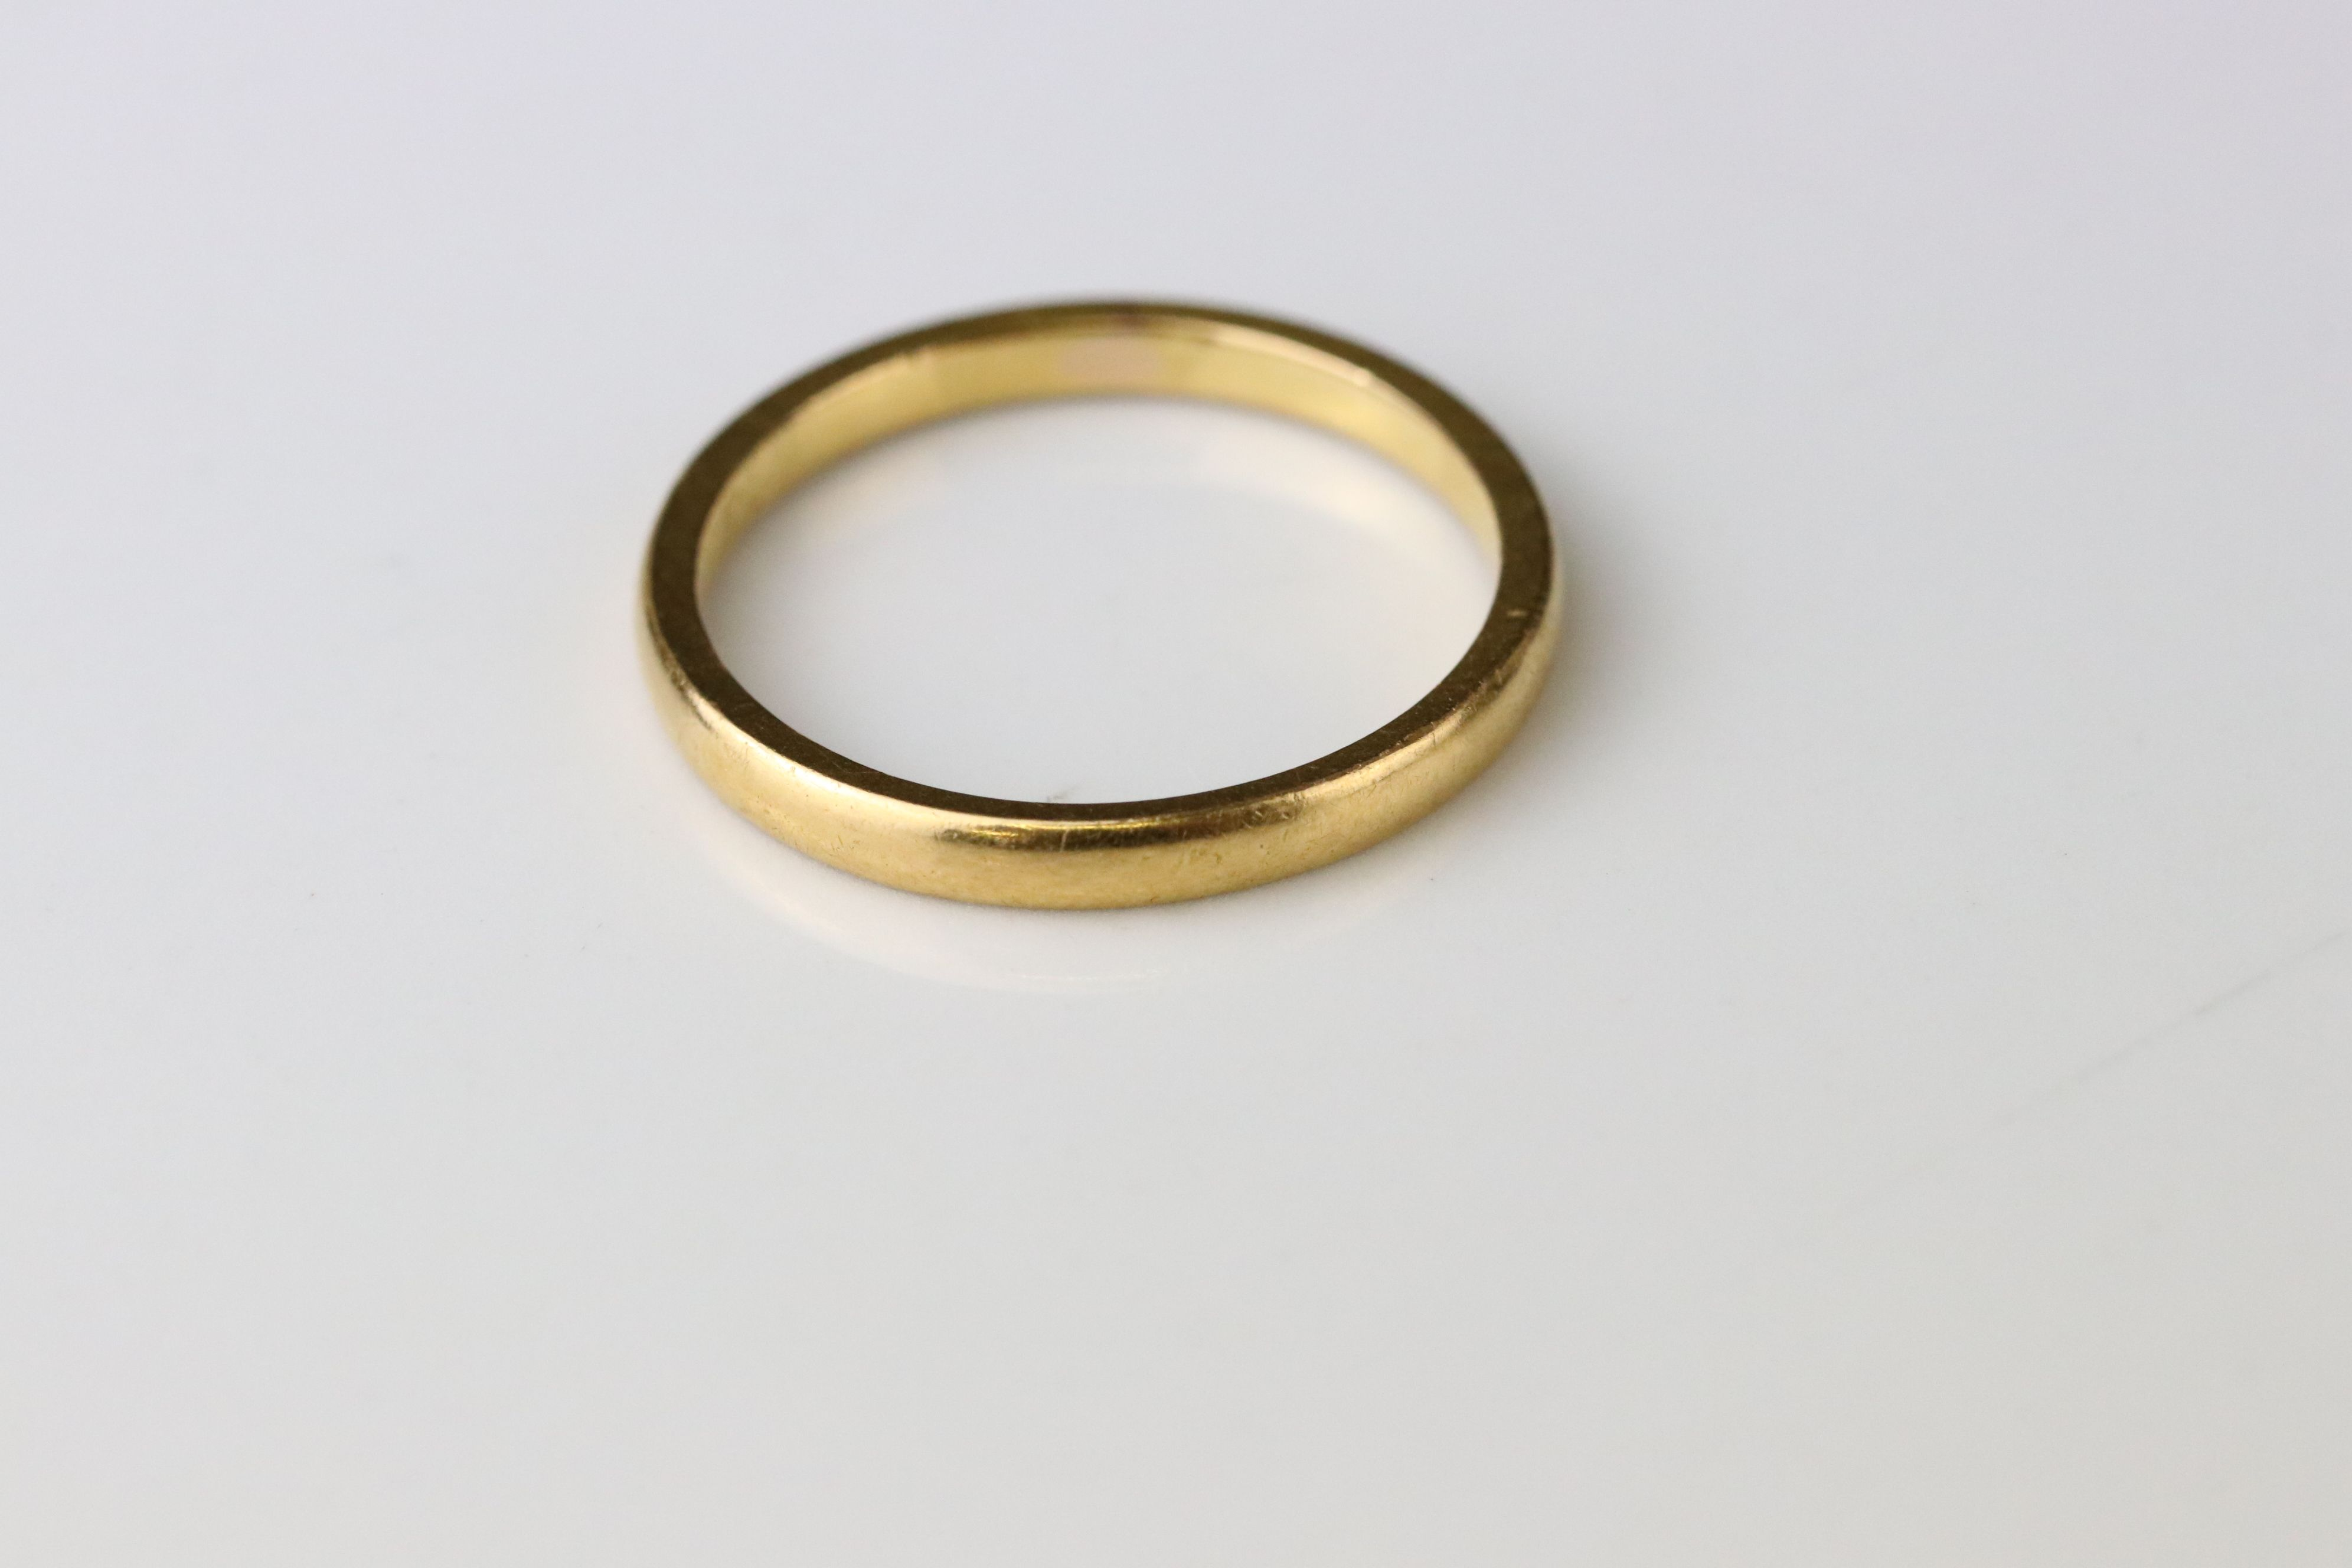 22ct yellow gold wedding band, personalisation to inner shank, width approx 2mm, ring size Q - Image 3 of 3